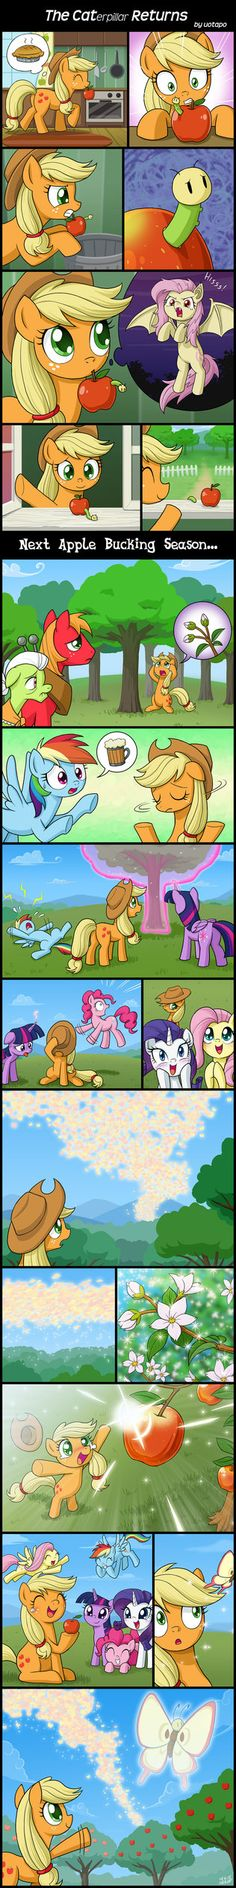 when applejack discovers a caterpillar in her apple, she has second thoughts about throwing it away. My Little Pony Characters, My Little Pony Comic, My Little Pony Pictures, Mlp Comics, Cute Comics, Mlp Memes, Arte Do Kawaii, Little Poni, Imagenes My Little Pony